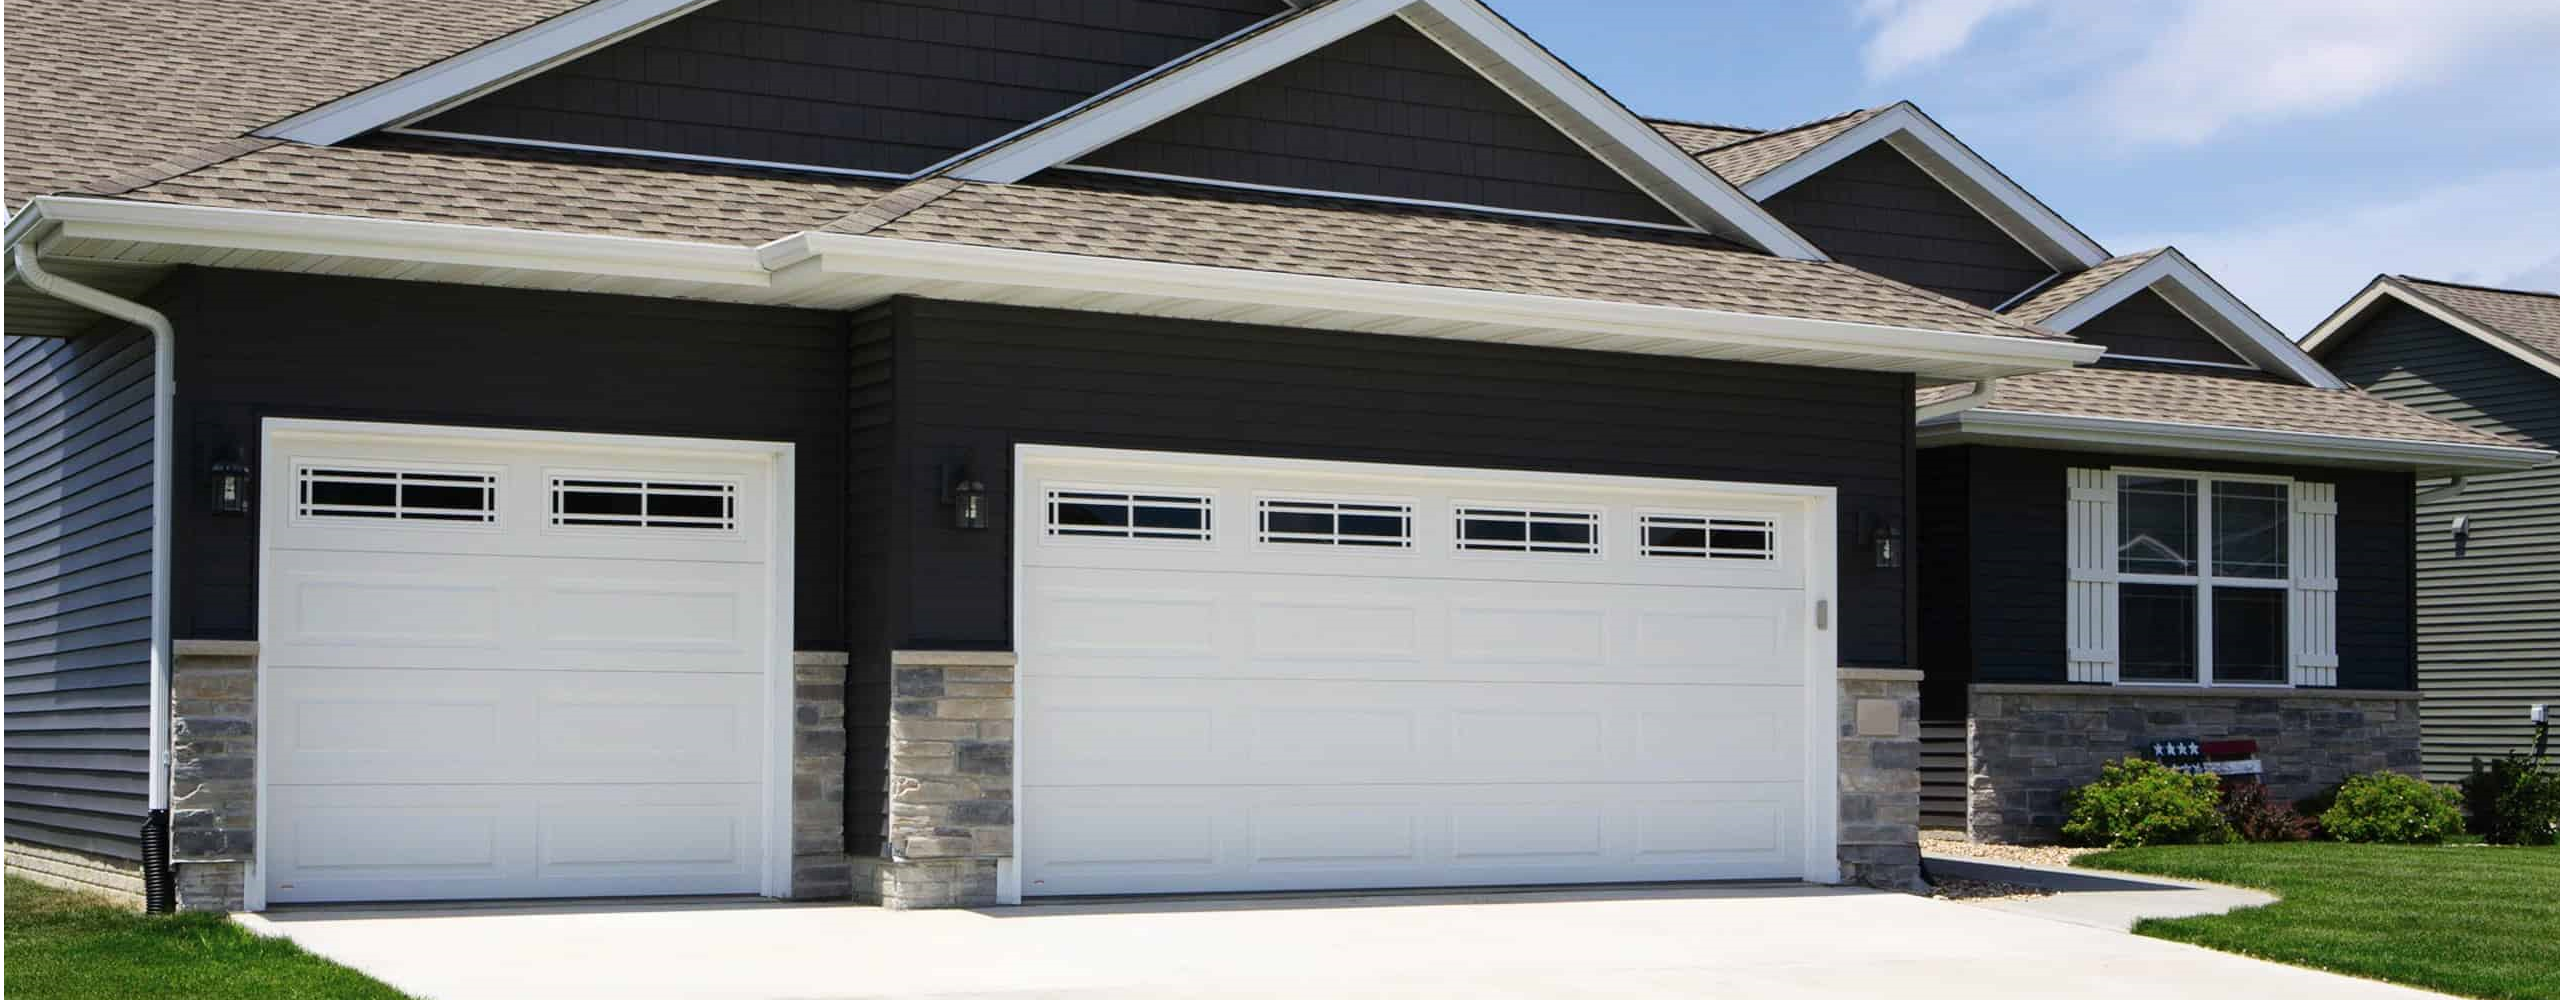 Traditional Residential Garage Doors in NJ